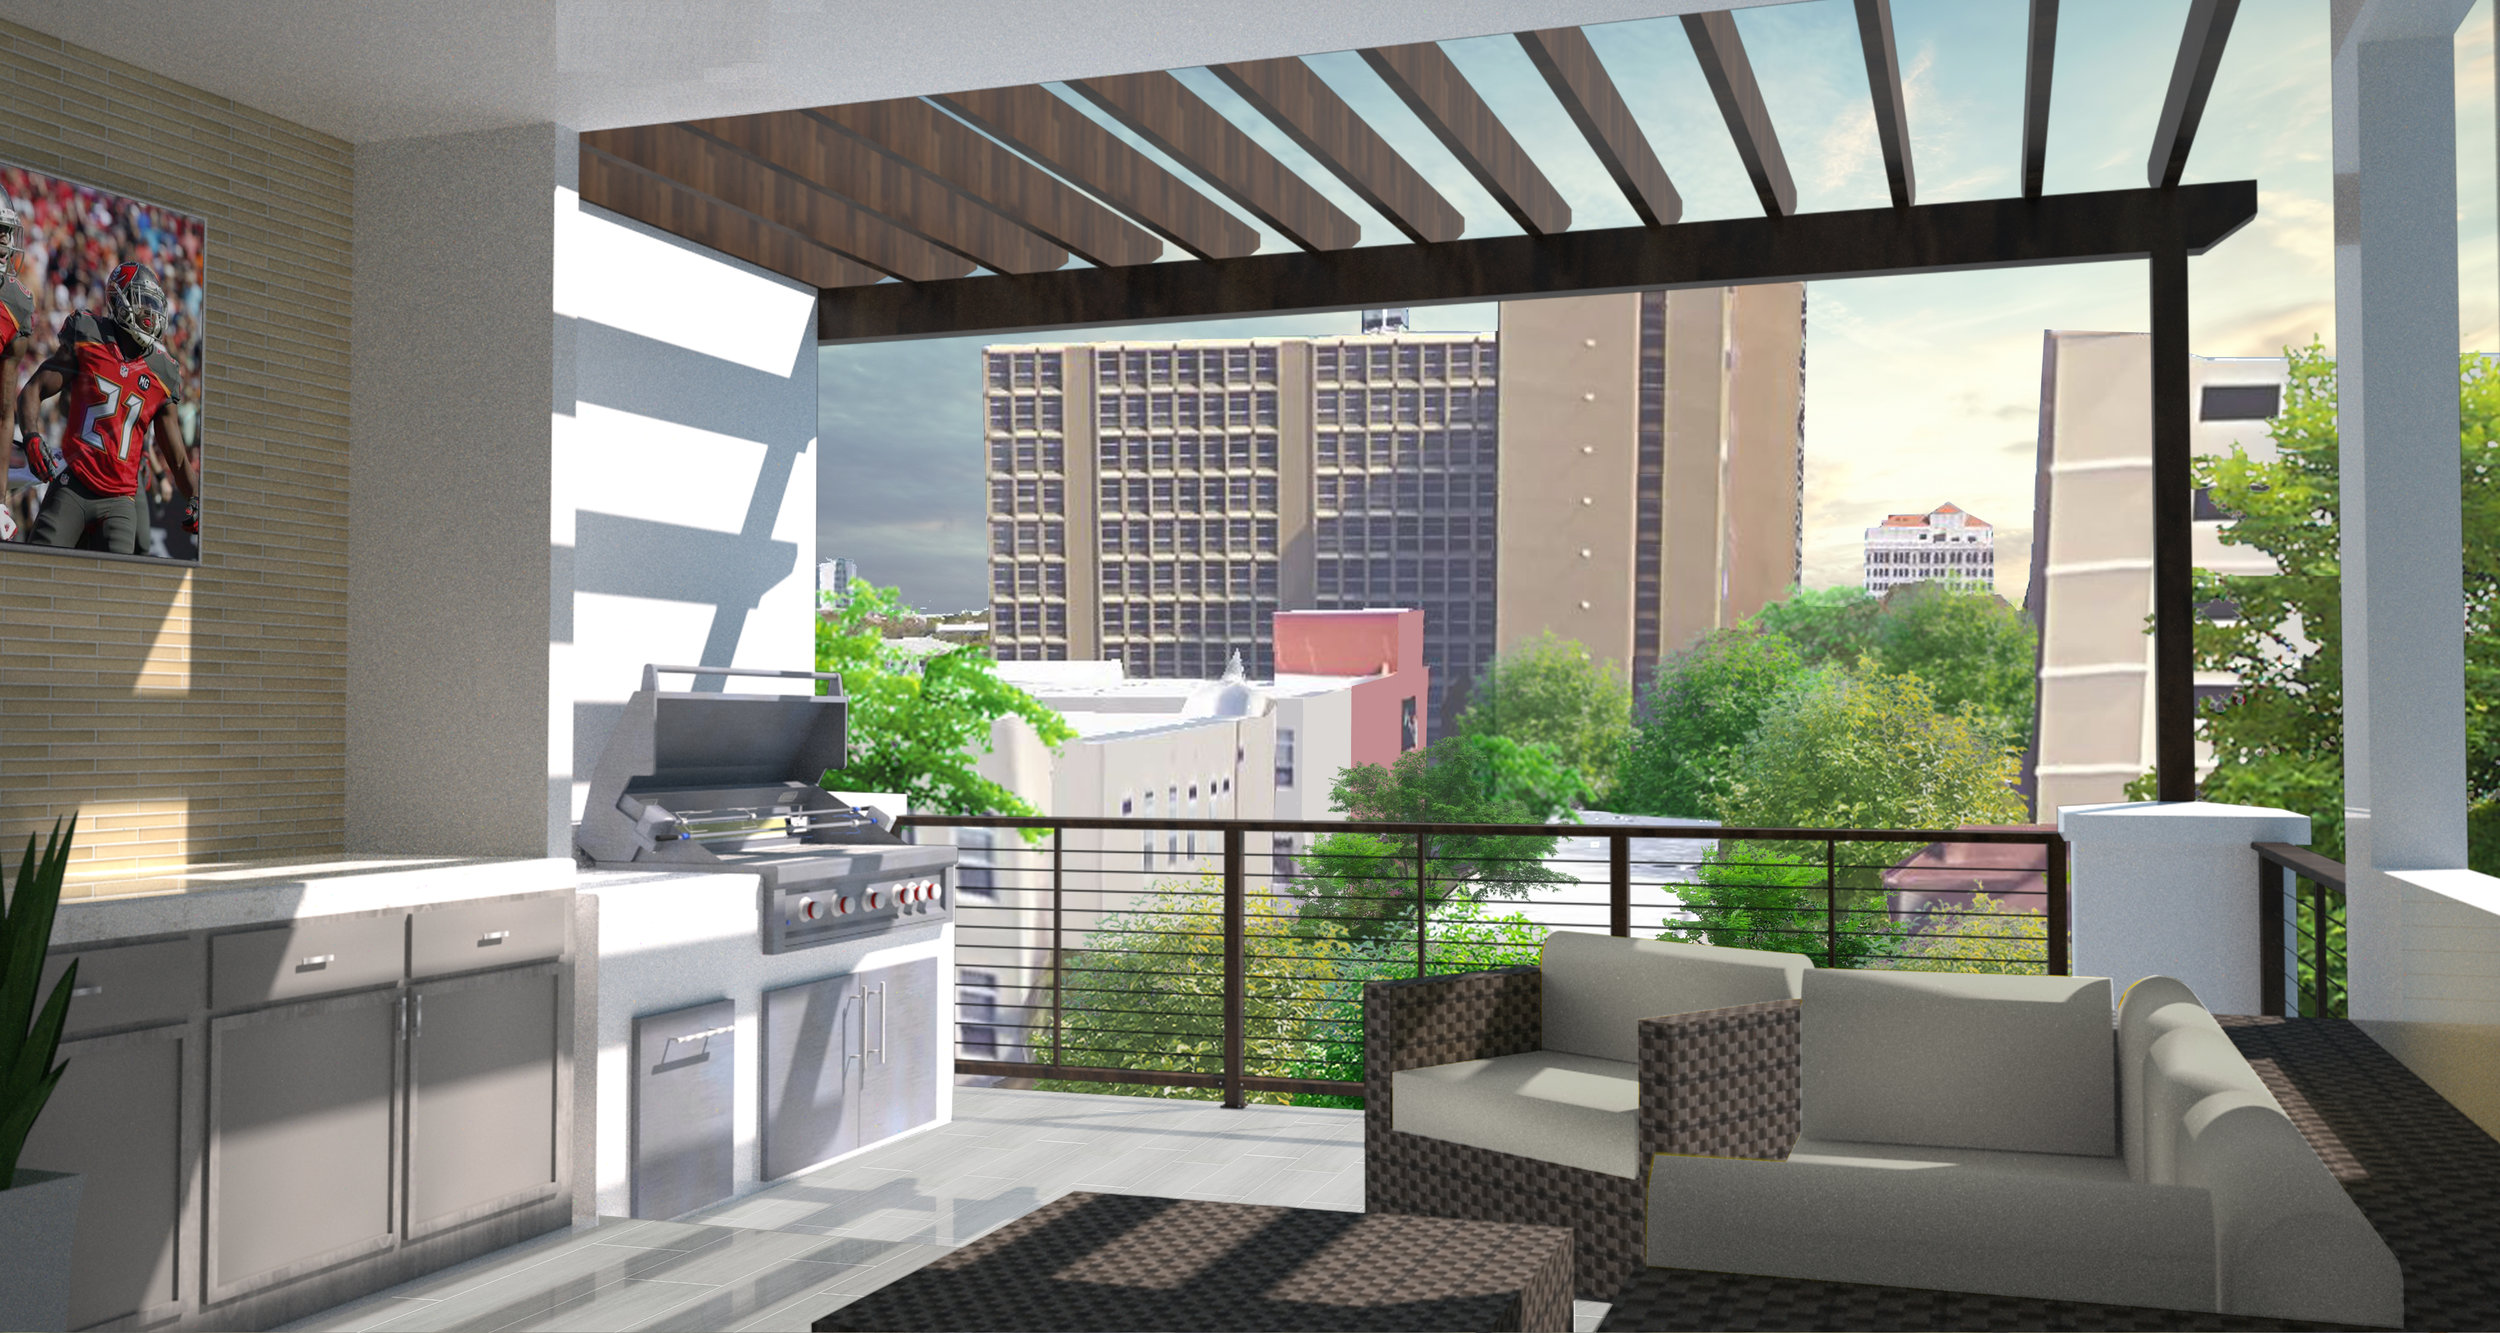 New Balcony Render.jpg